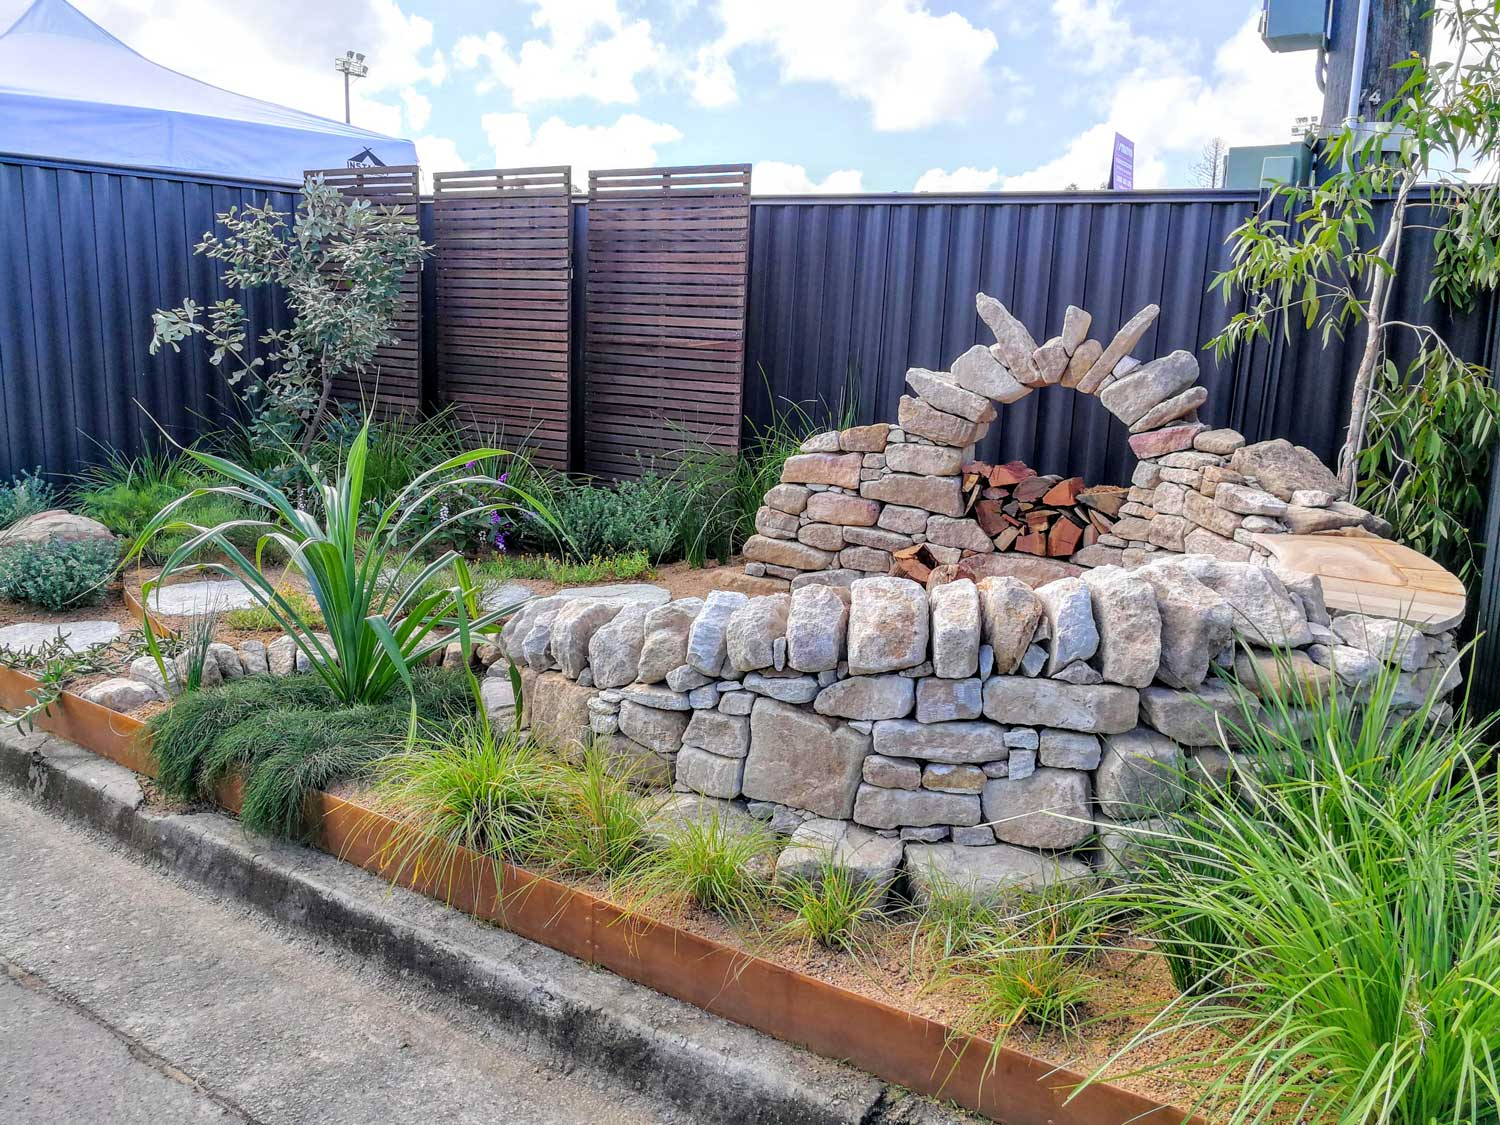 Another view of the display garden